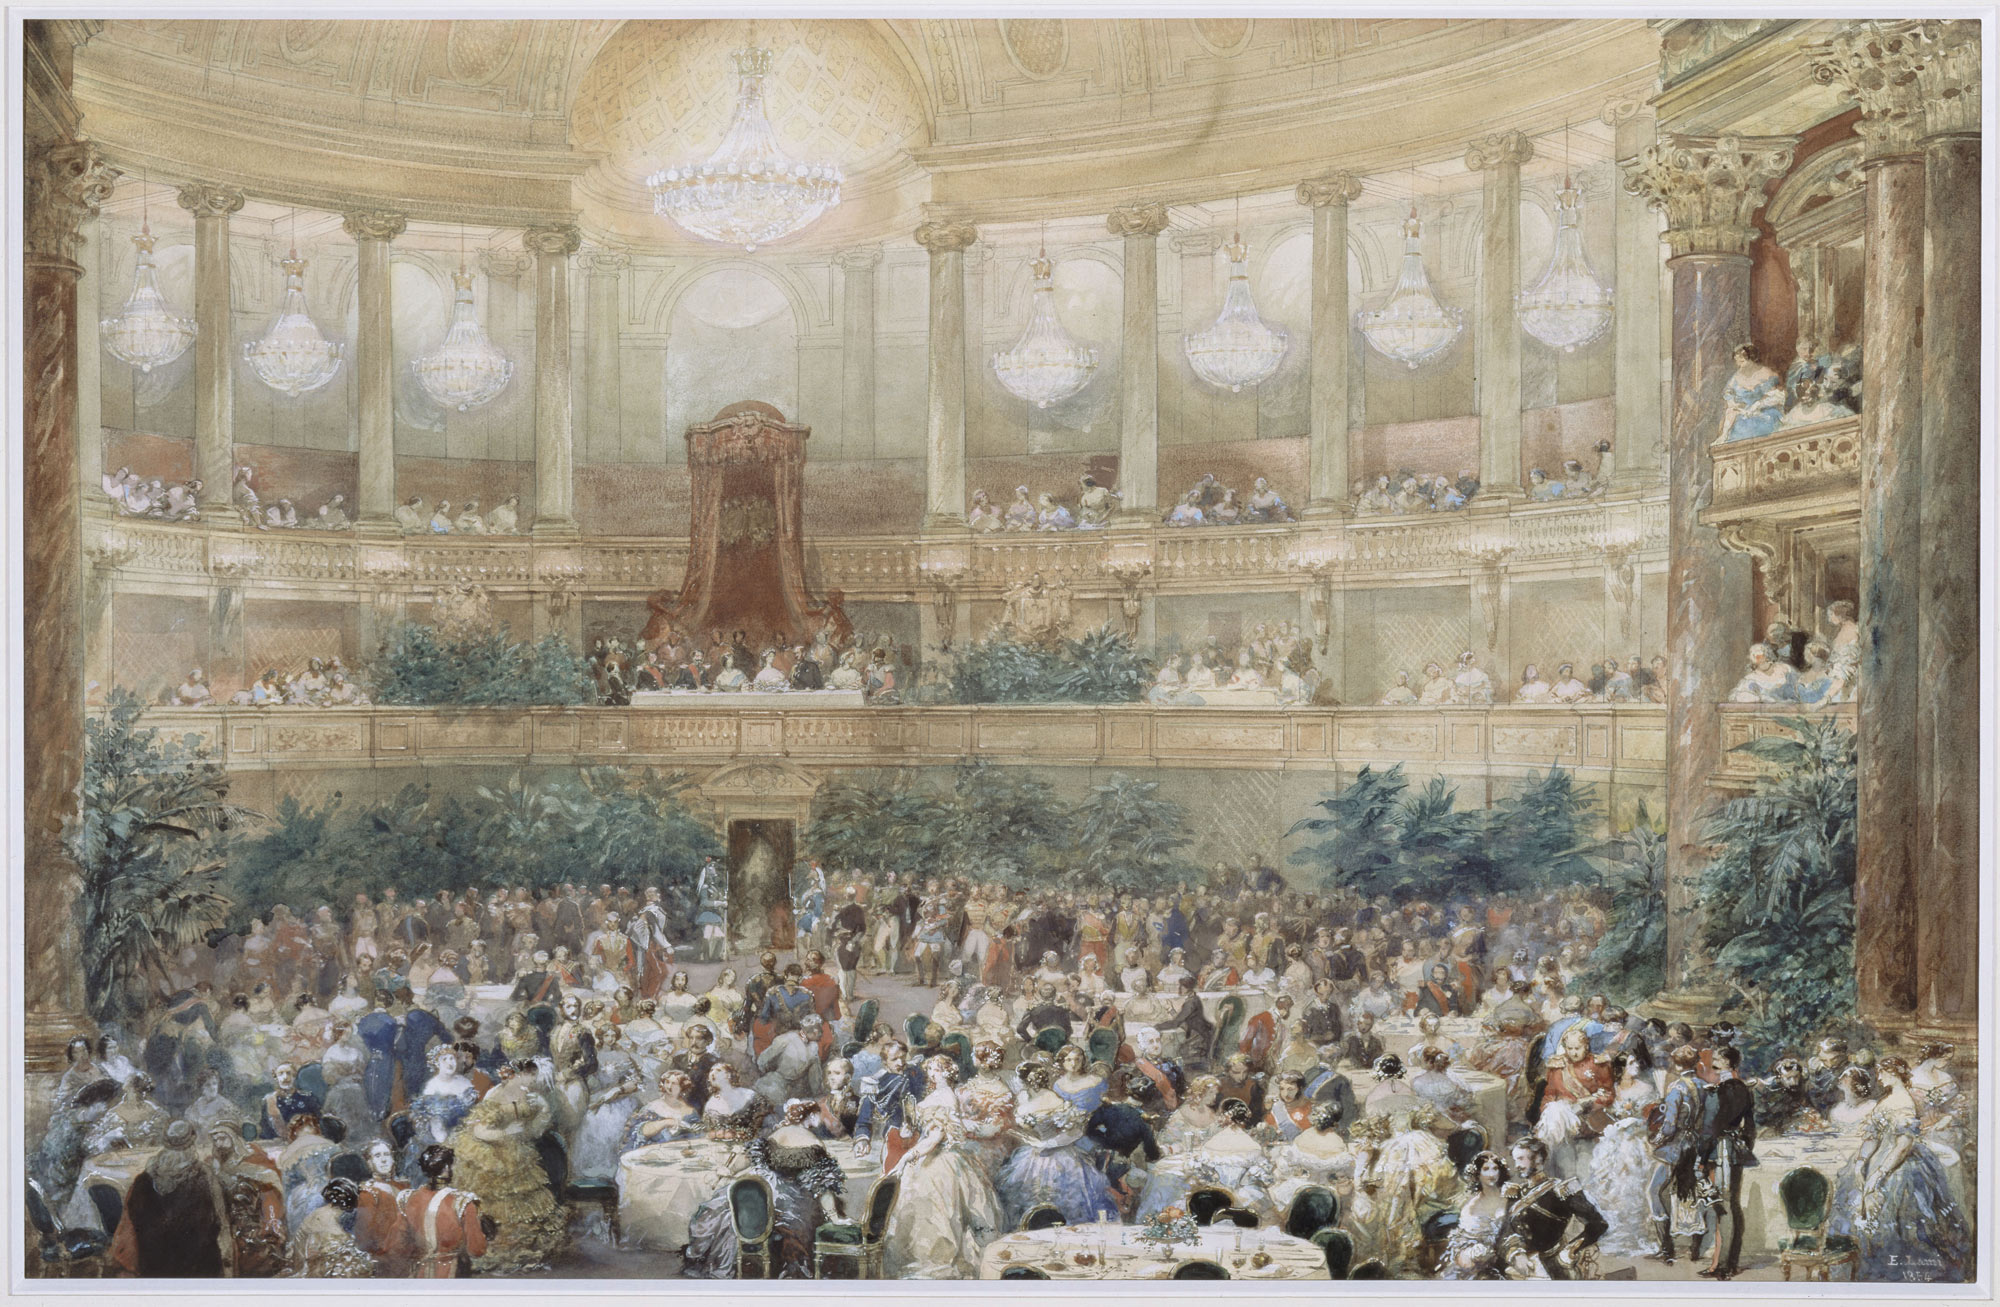 Visit of Queen Victoria to Paris in 1855, the supper offered by Napoleon  III to